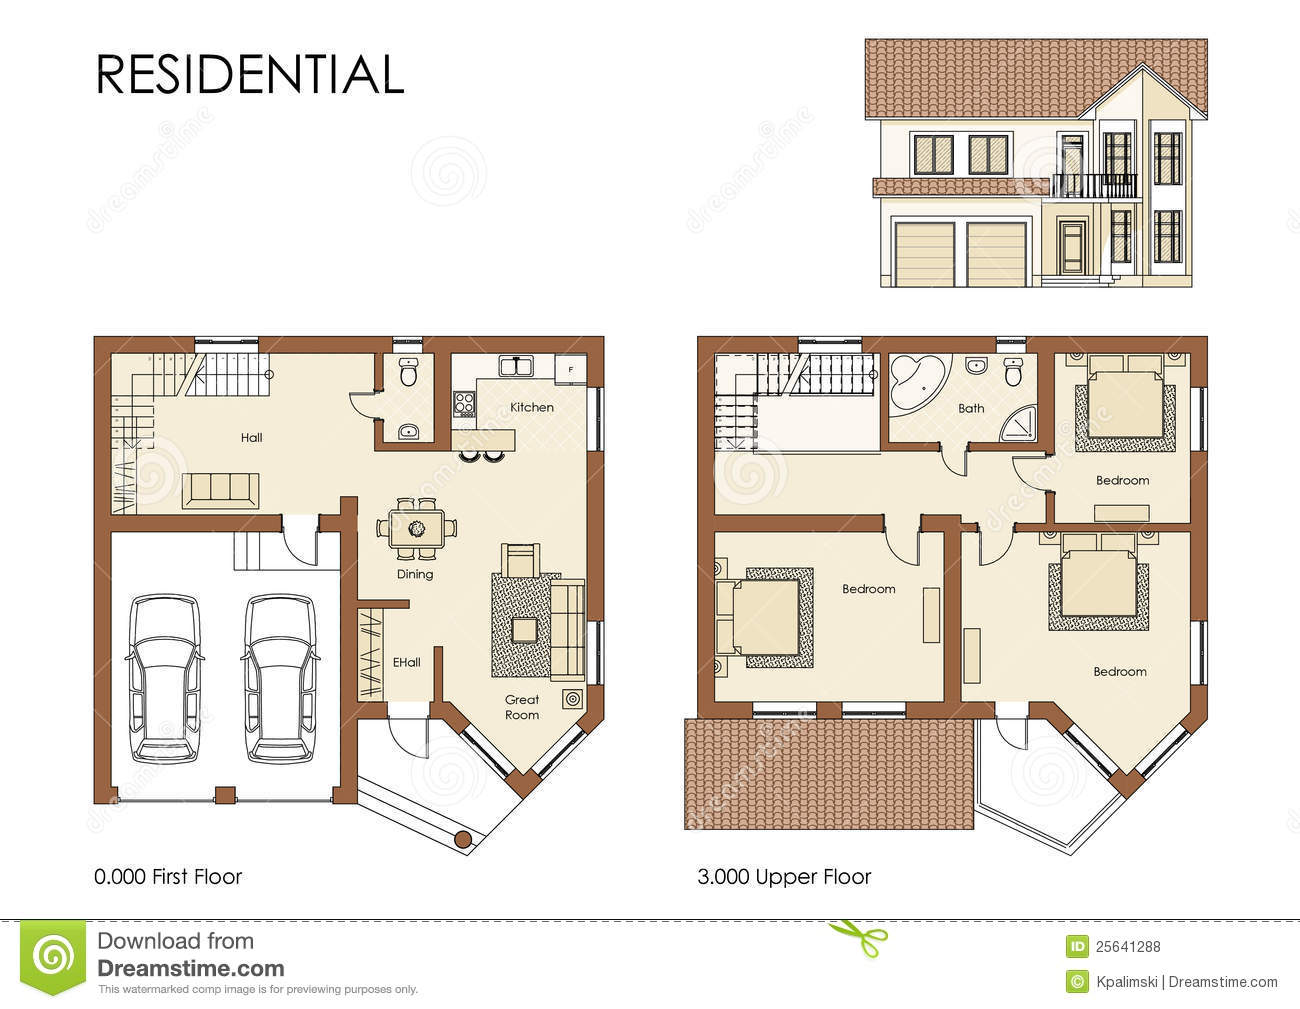 Residential house plan stock illustration illustration of for Residential home floor plans